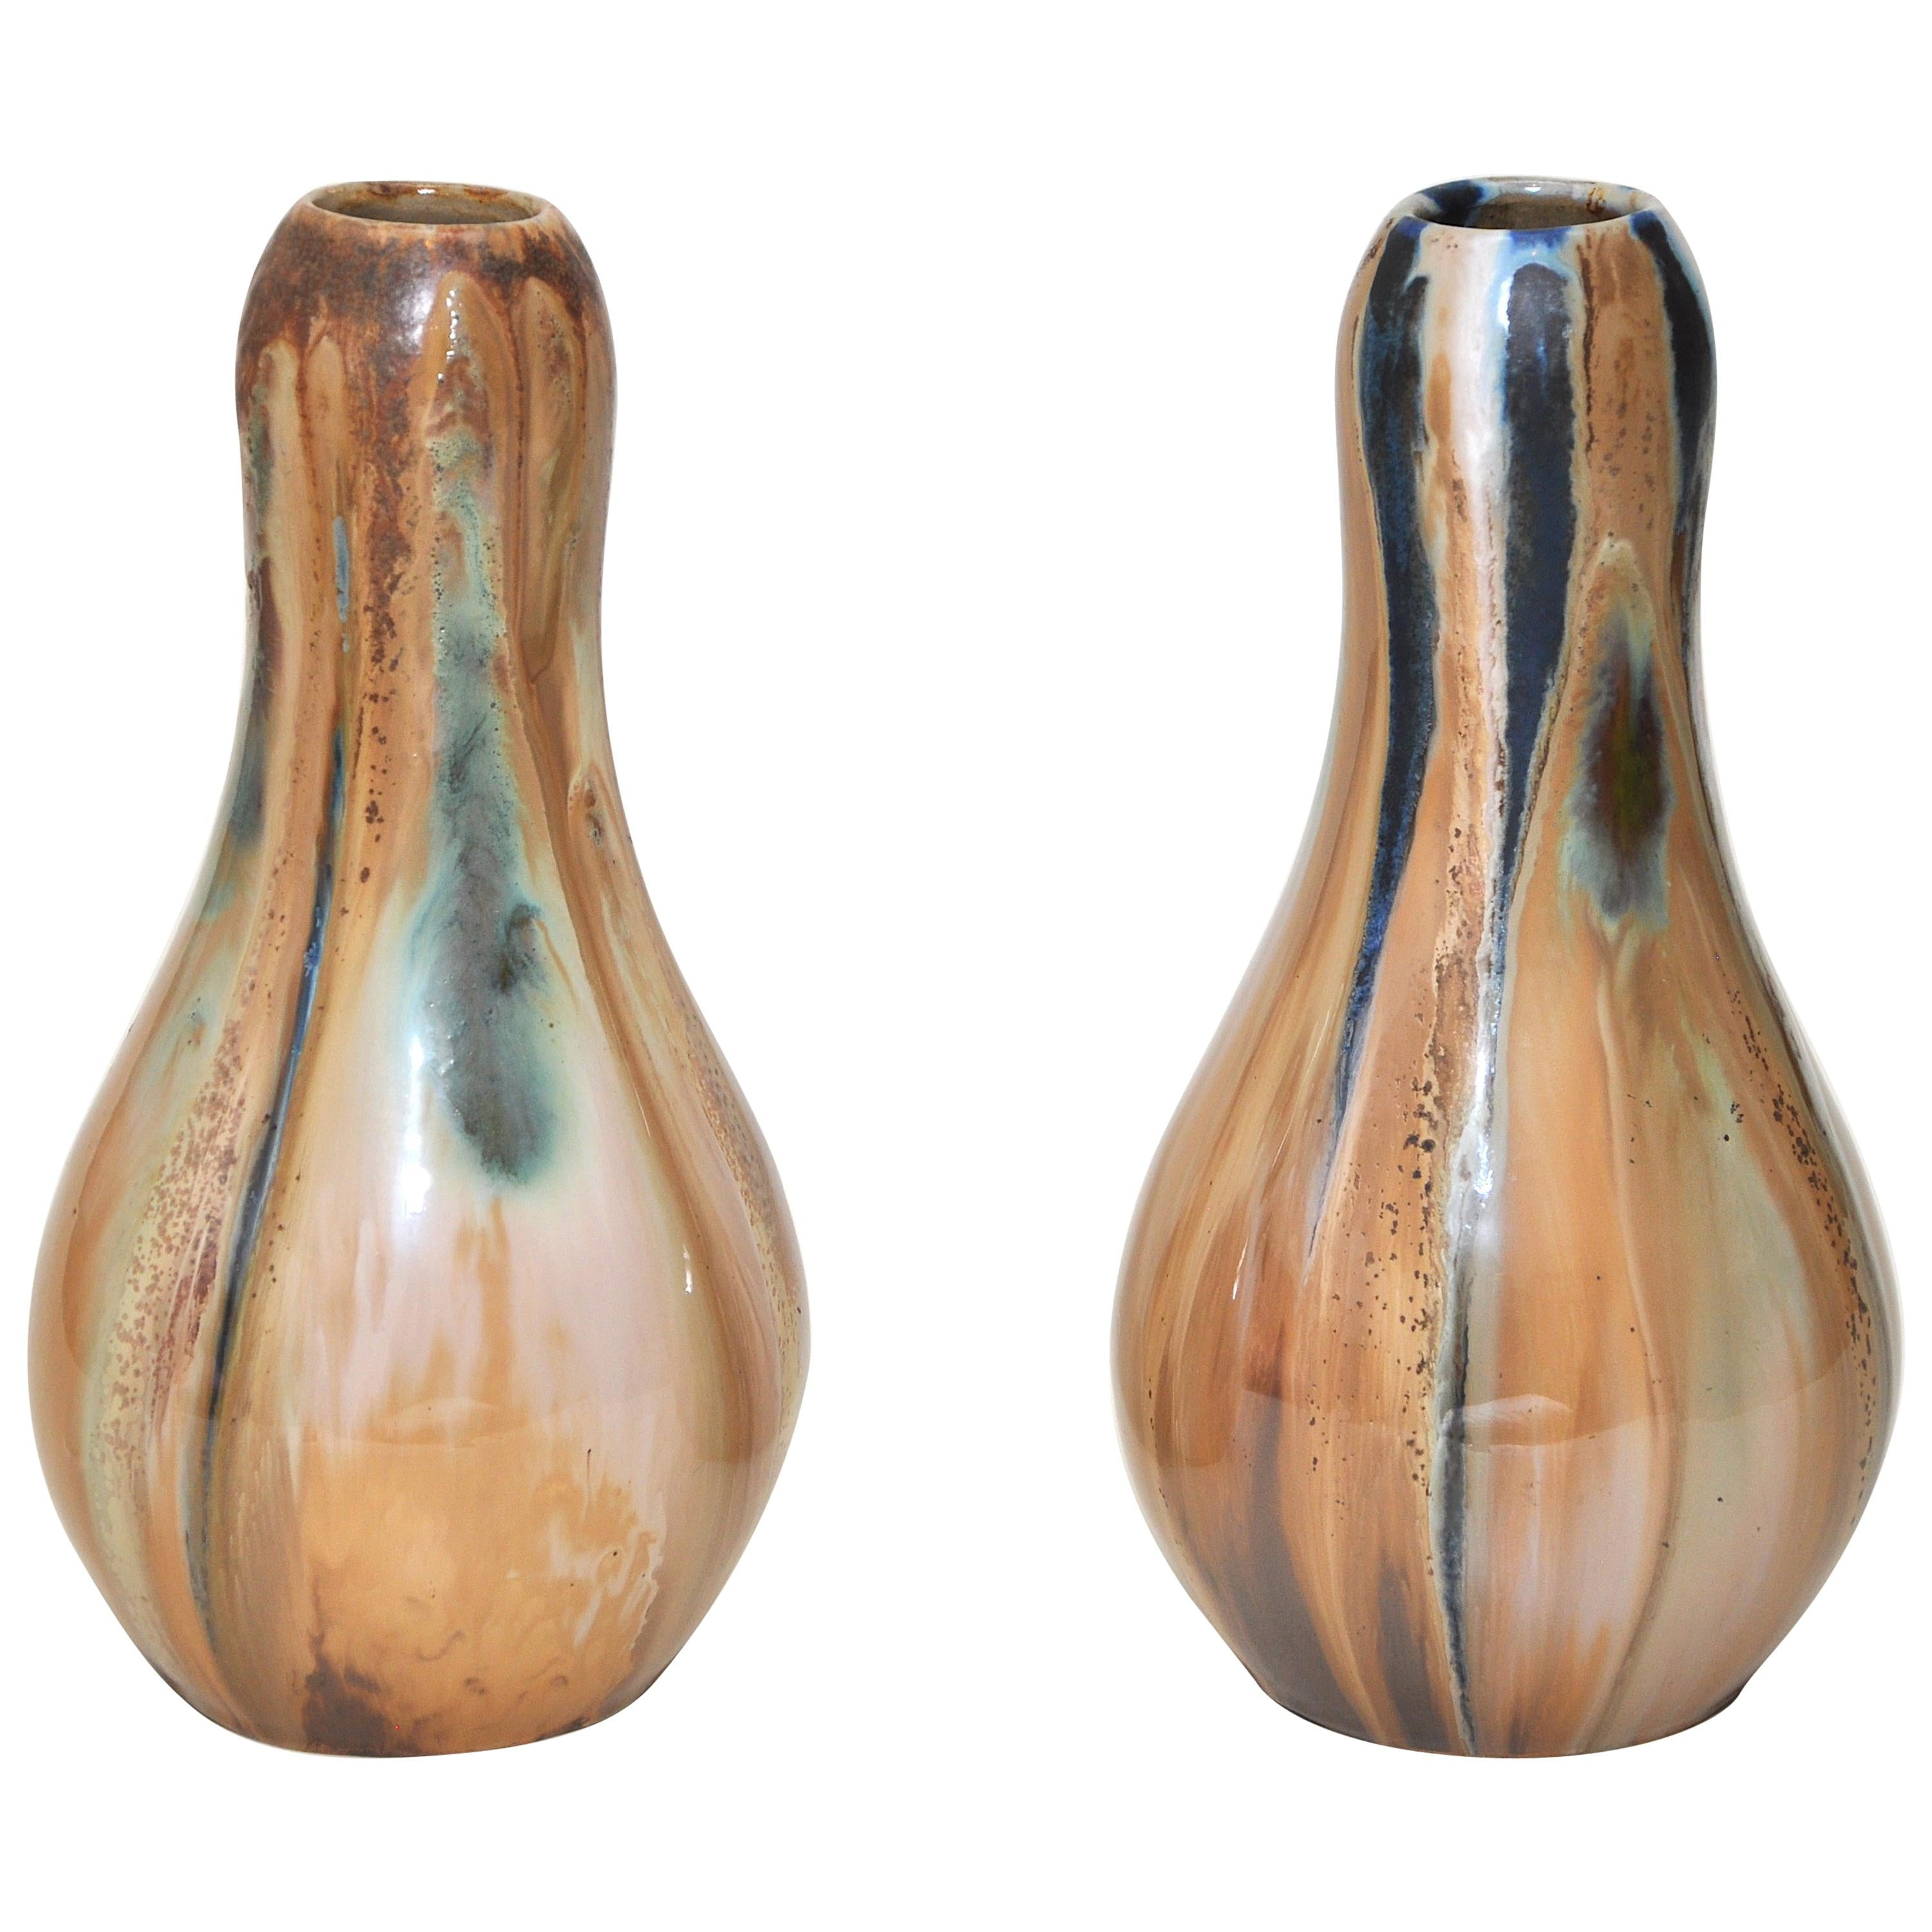 Pair of French Art Nouveau Vases by Alfonse Cytere Green Ochre Navy Blue